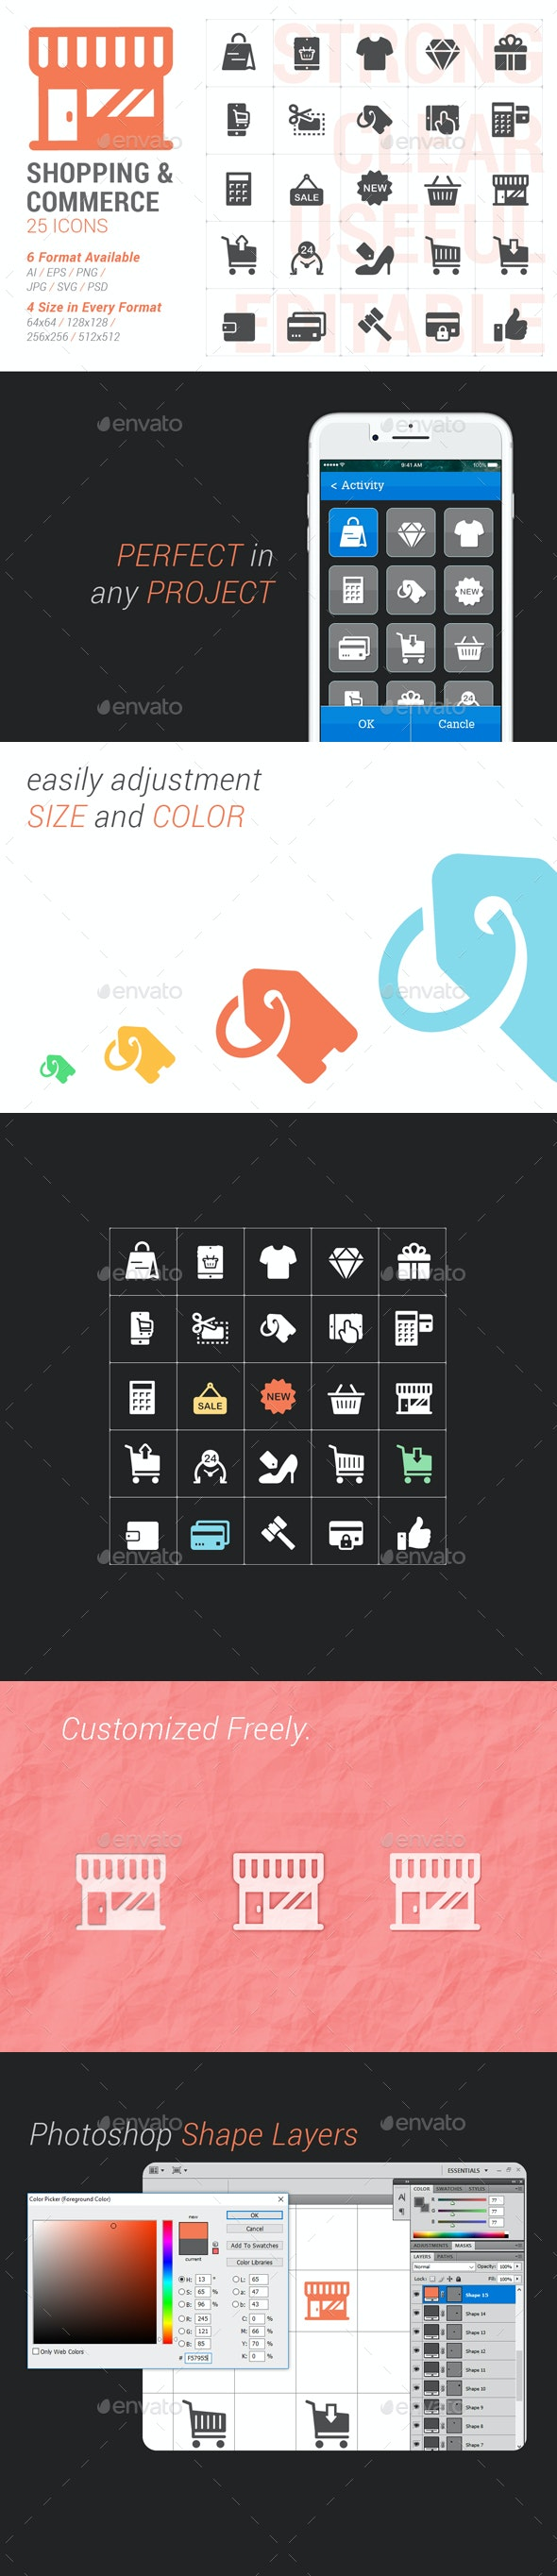 Shopping & Commerce Filled Icon - Business Icons